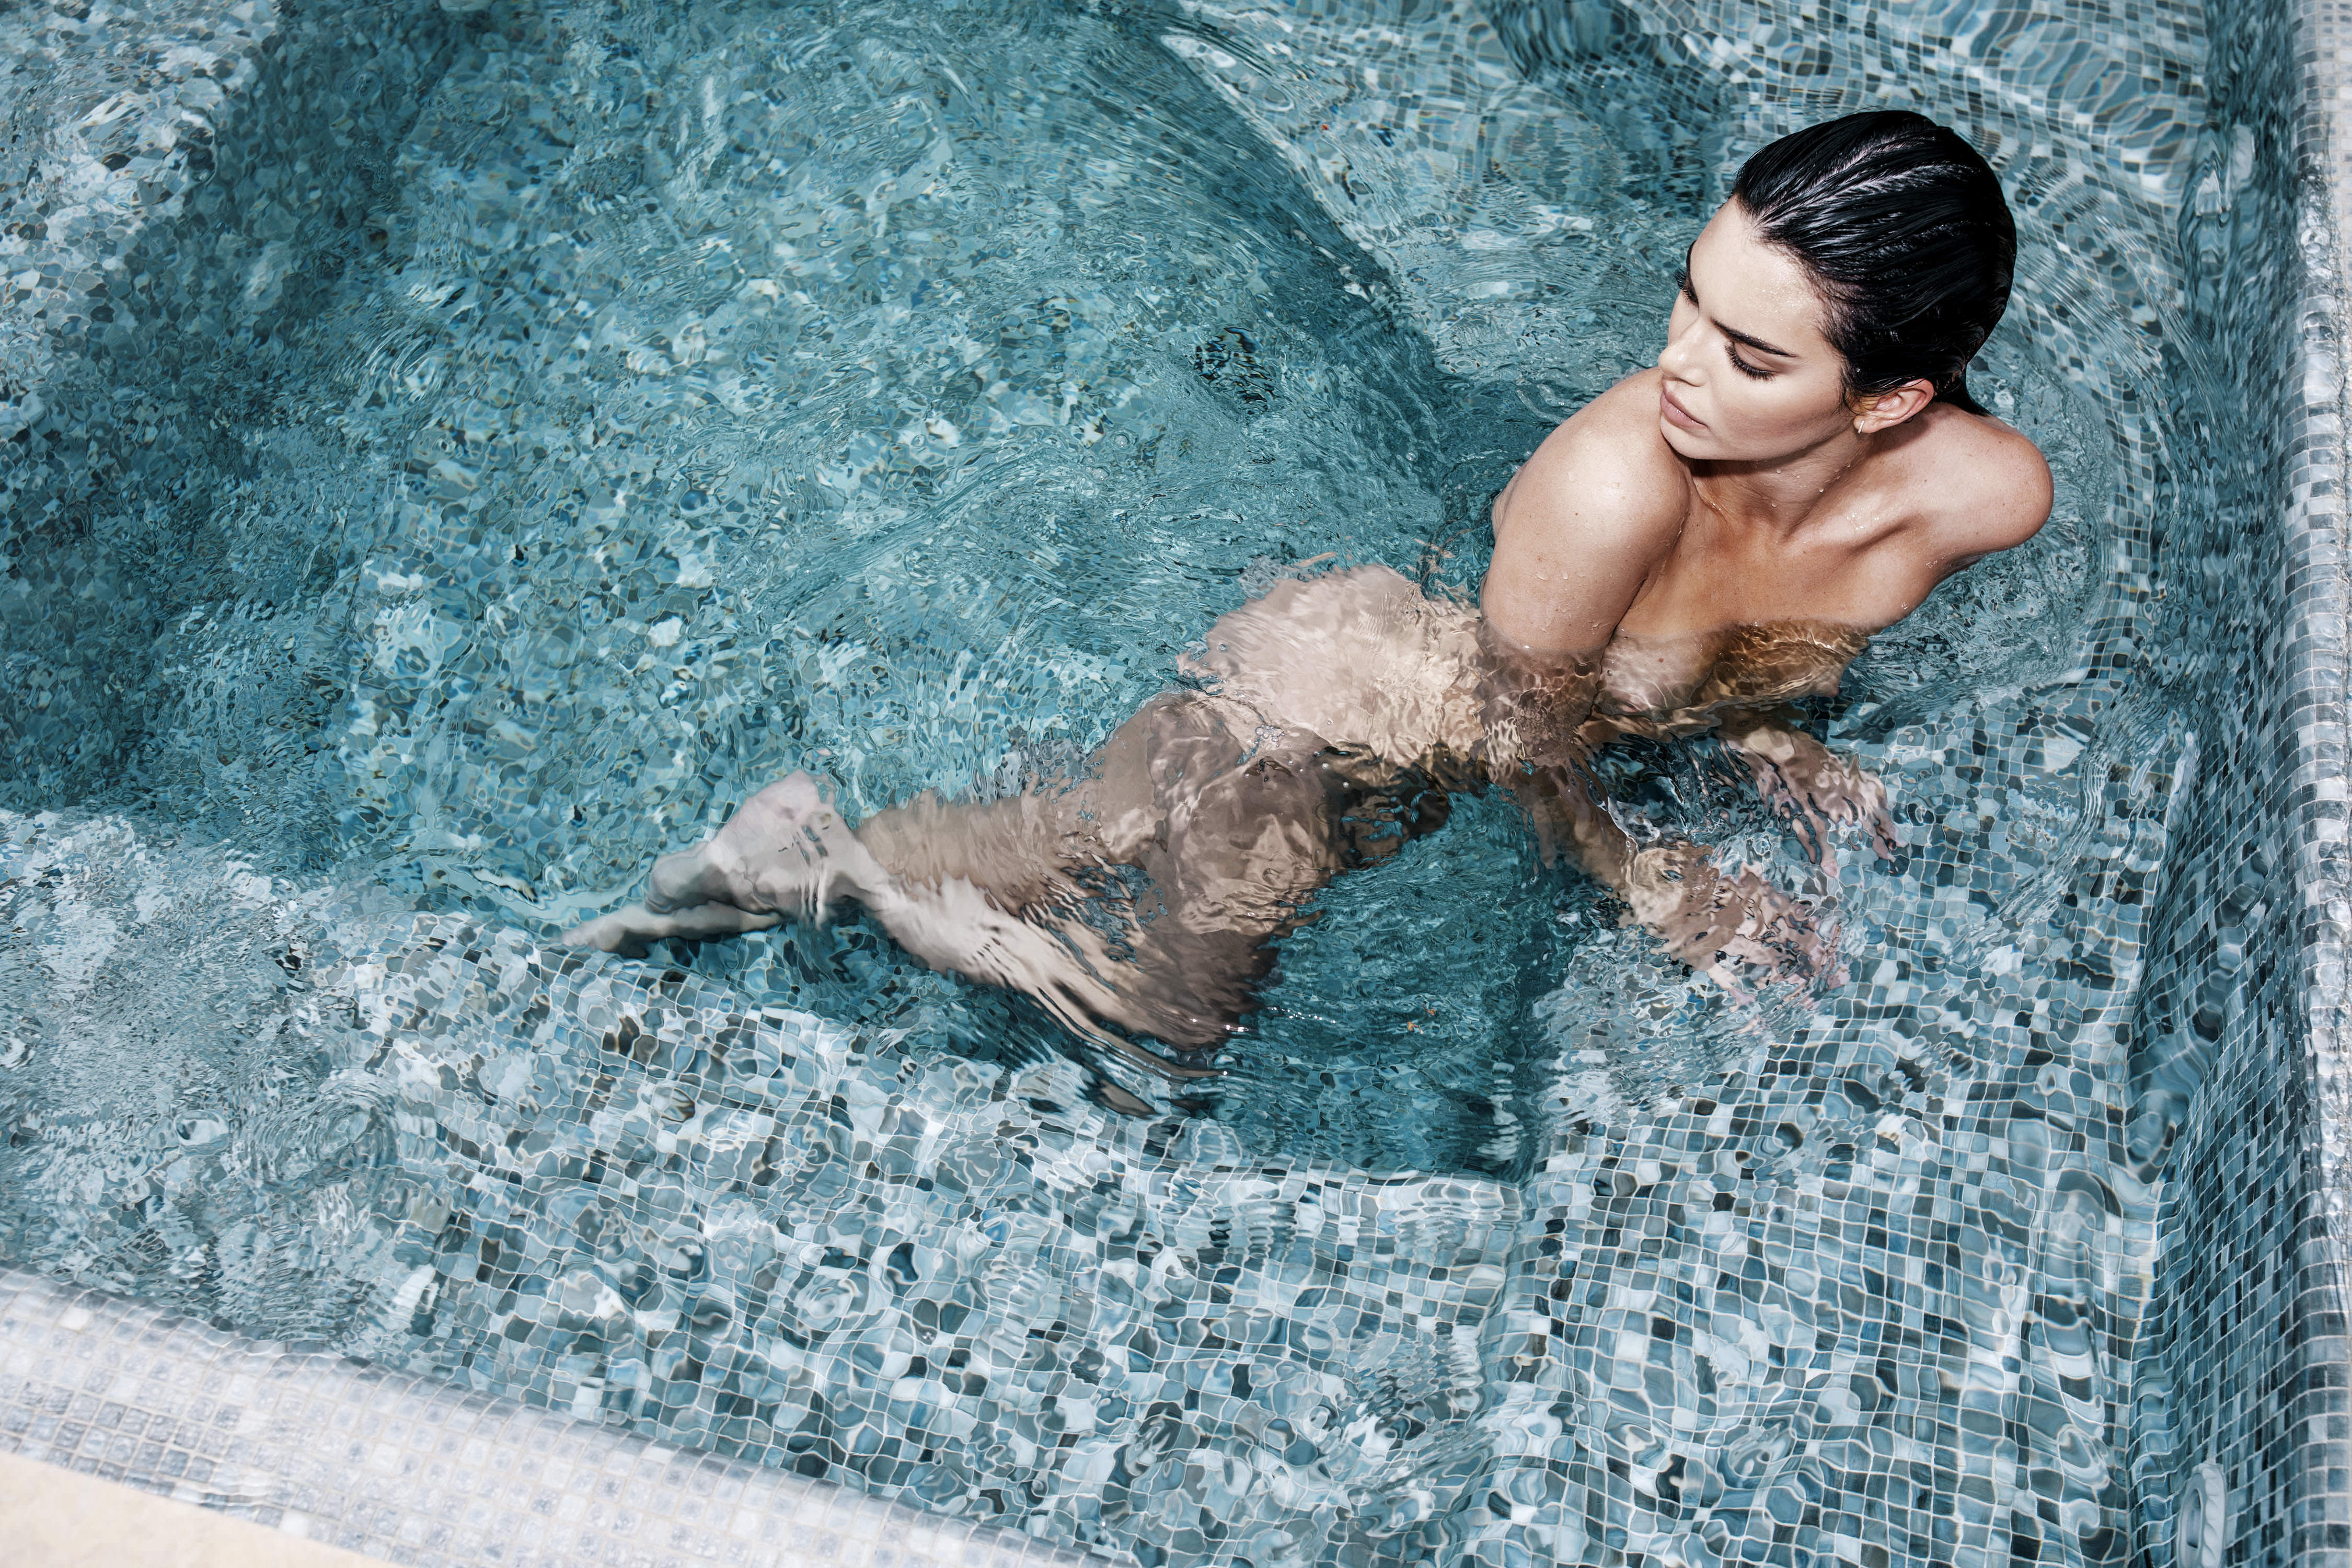 0810235419680_00_Kendall-Jenner-Nude-TheFappeningBlog.com-1.jpg